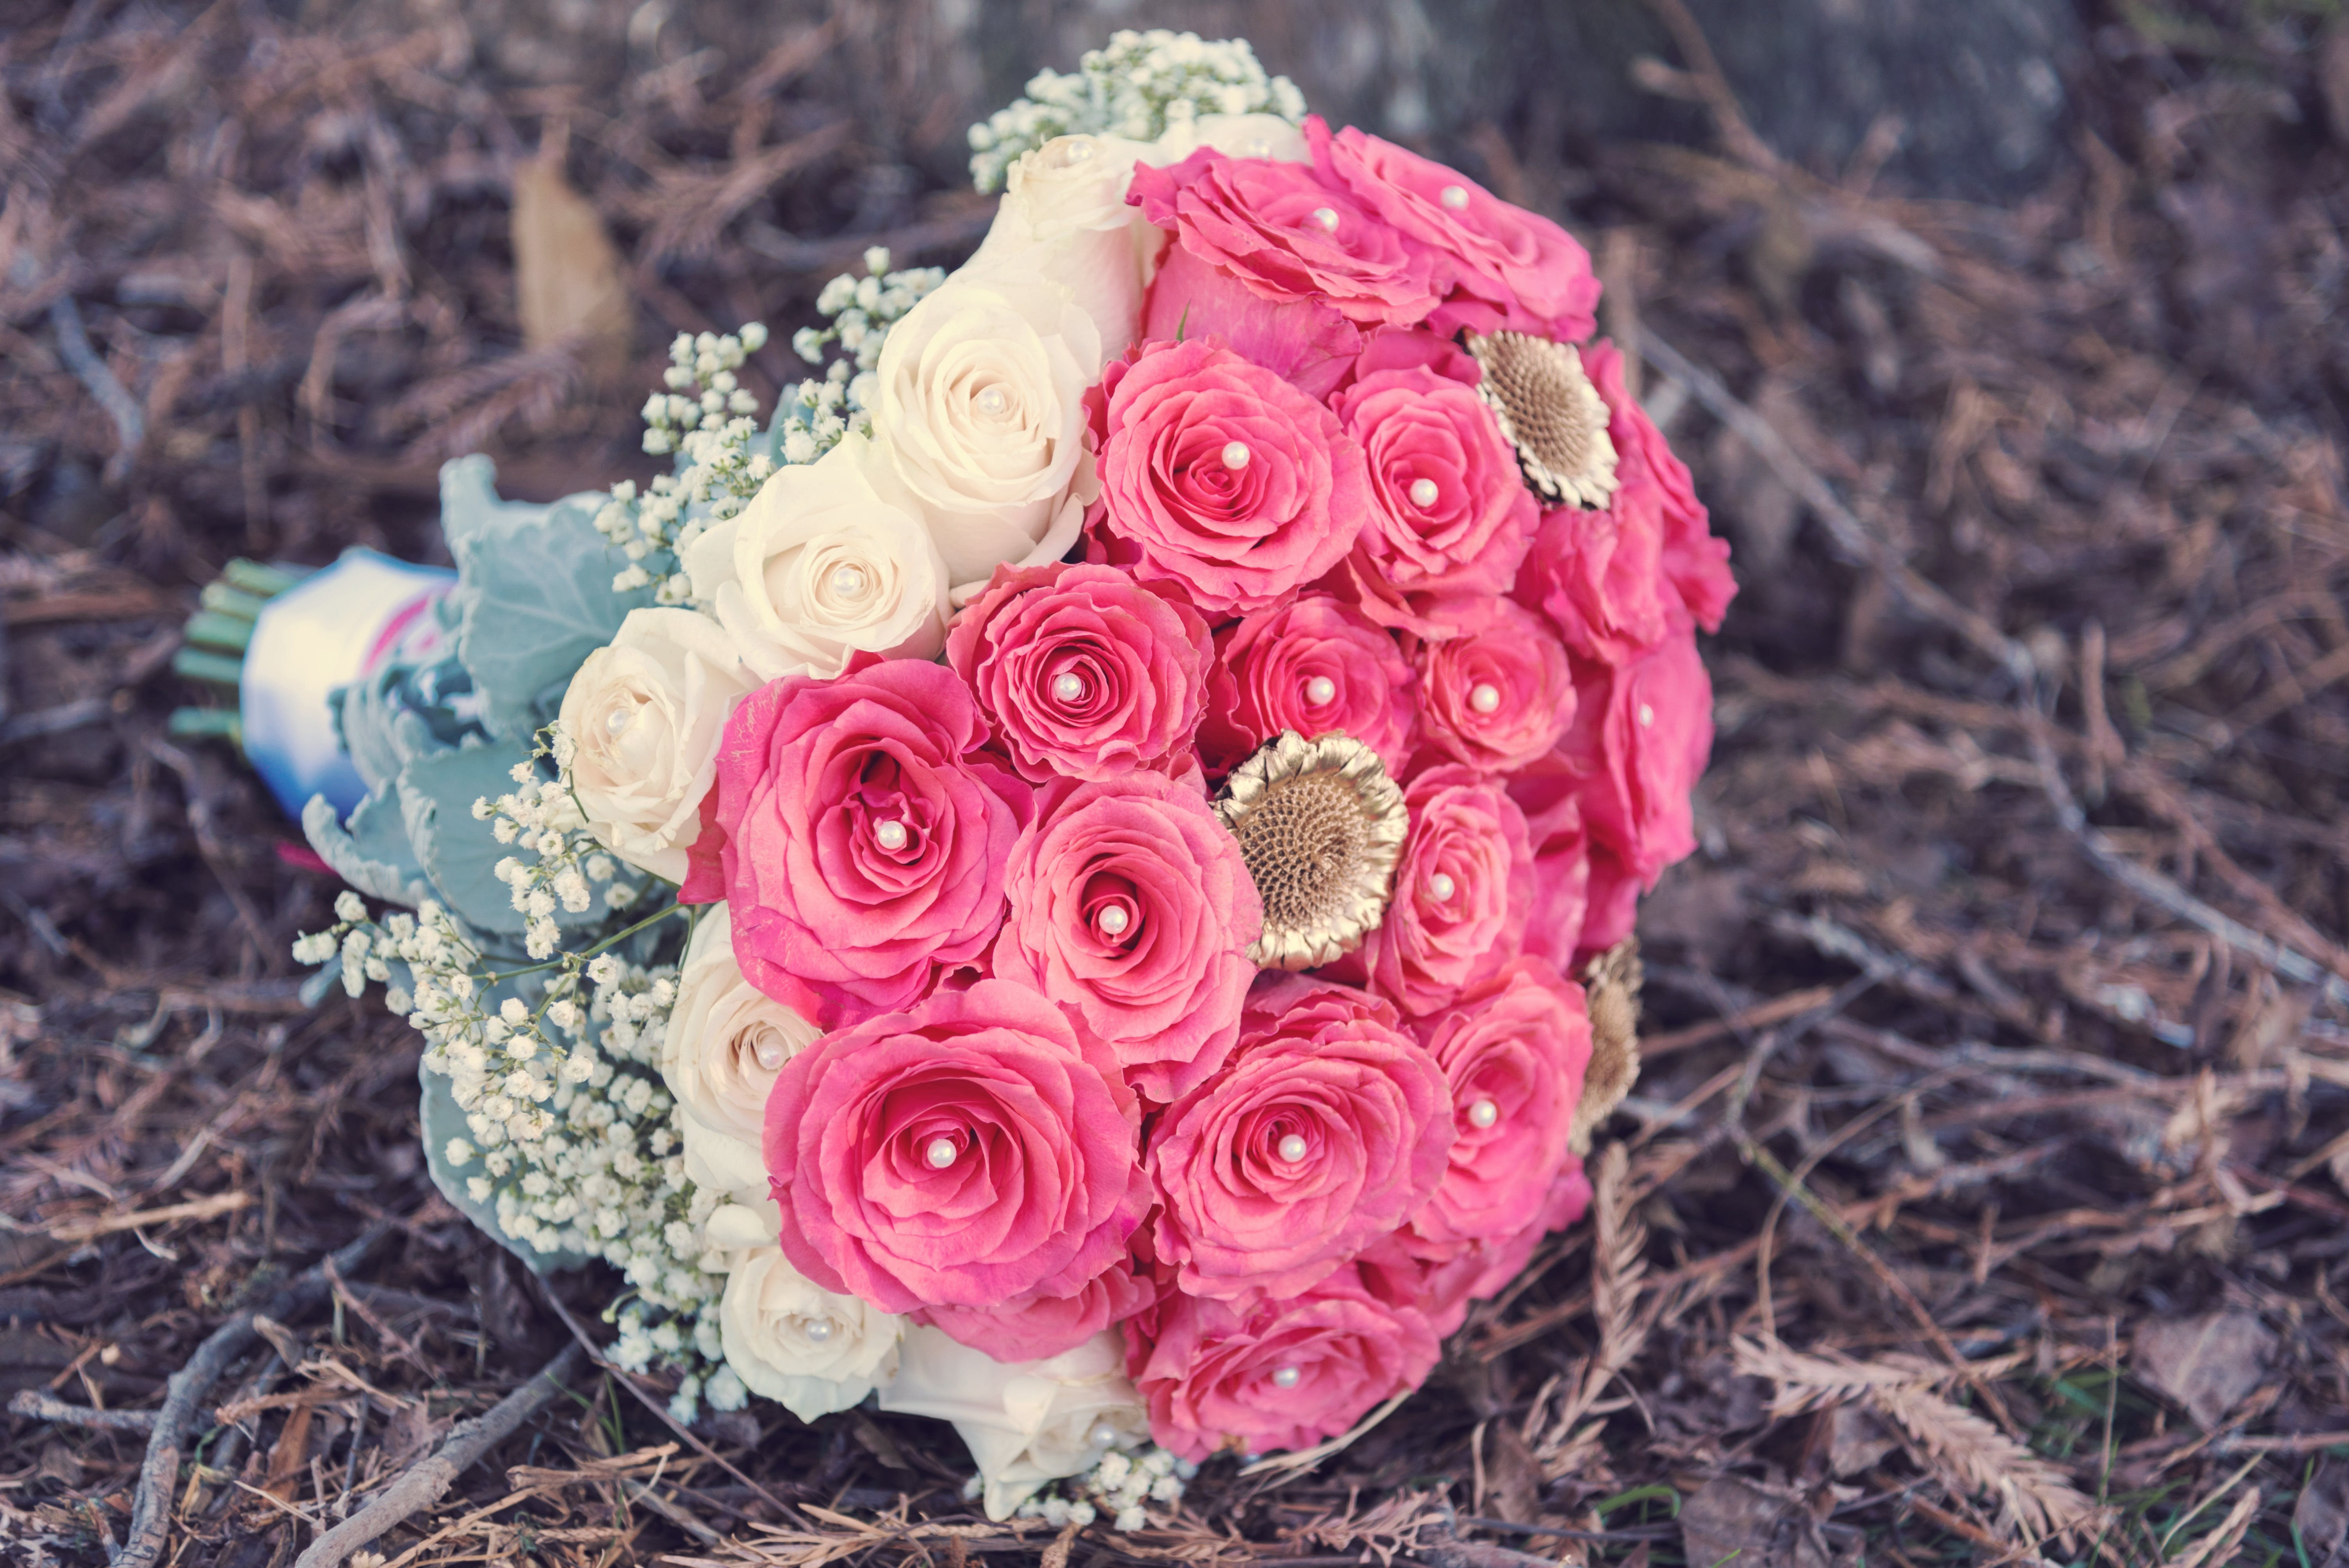 Pink and White Petaled Flower Bouquet